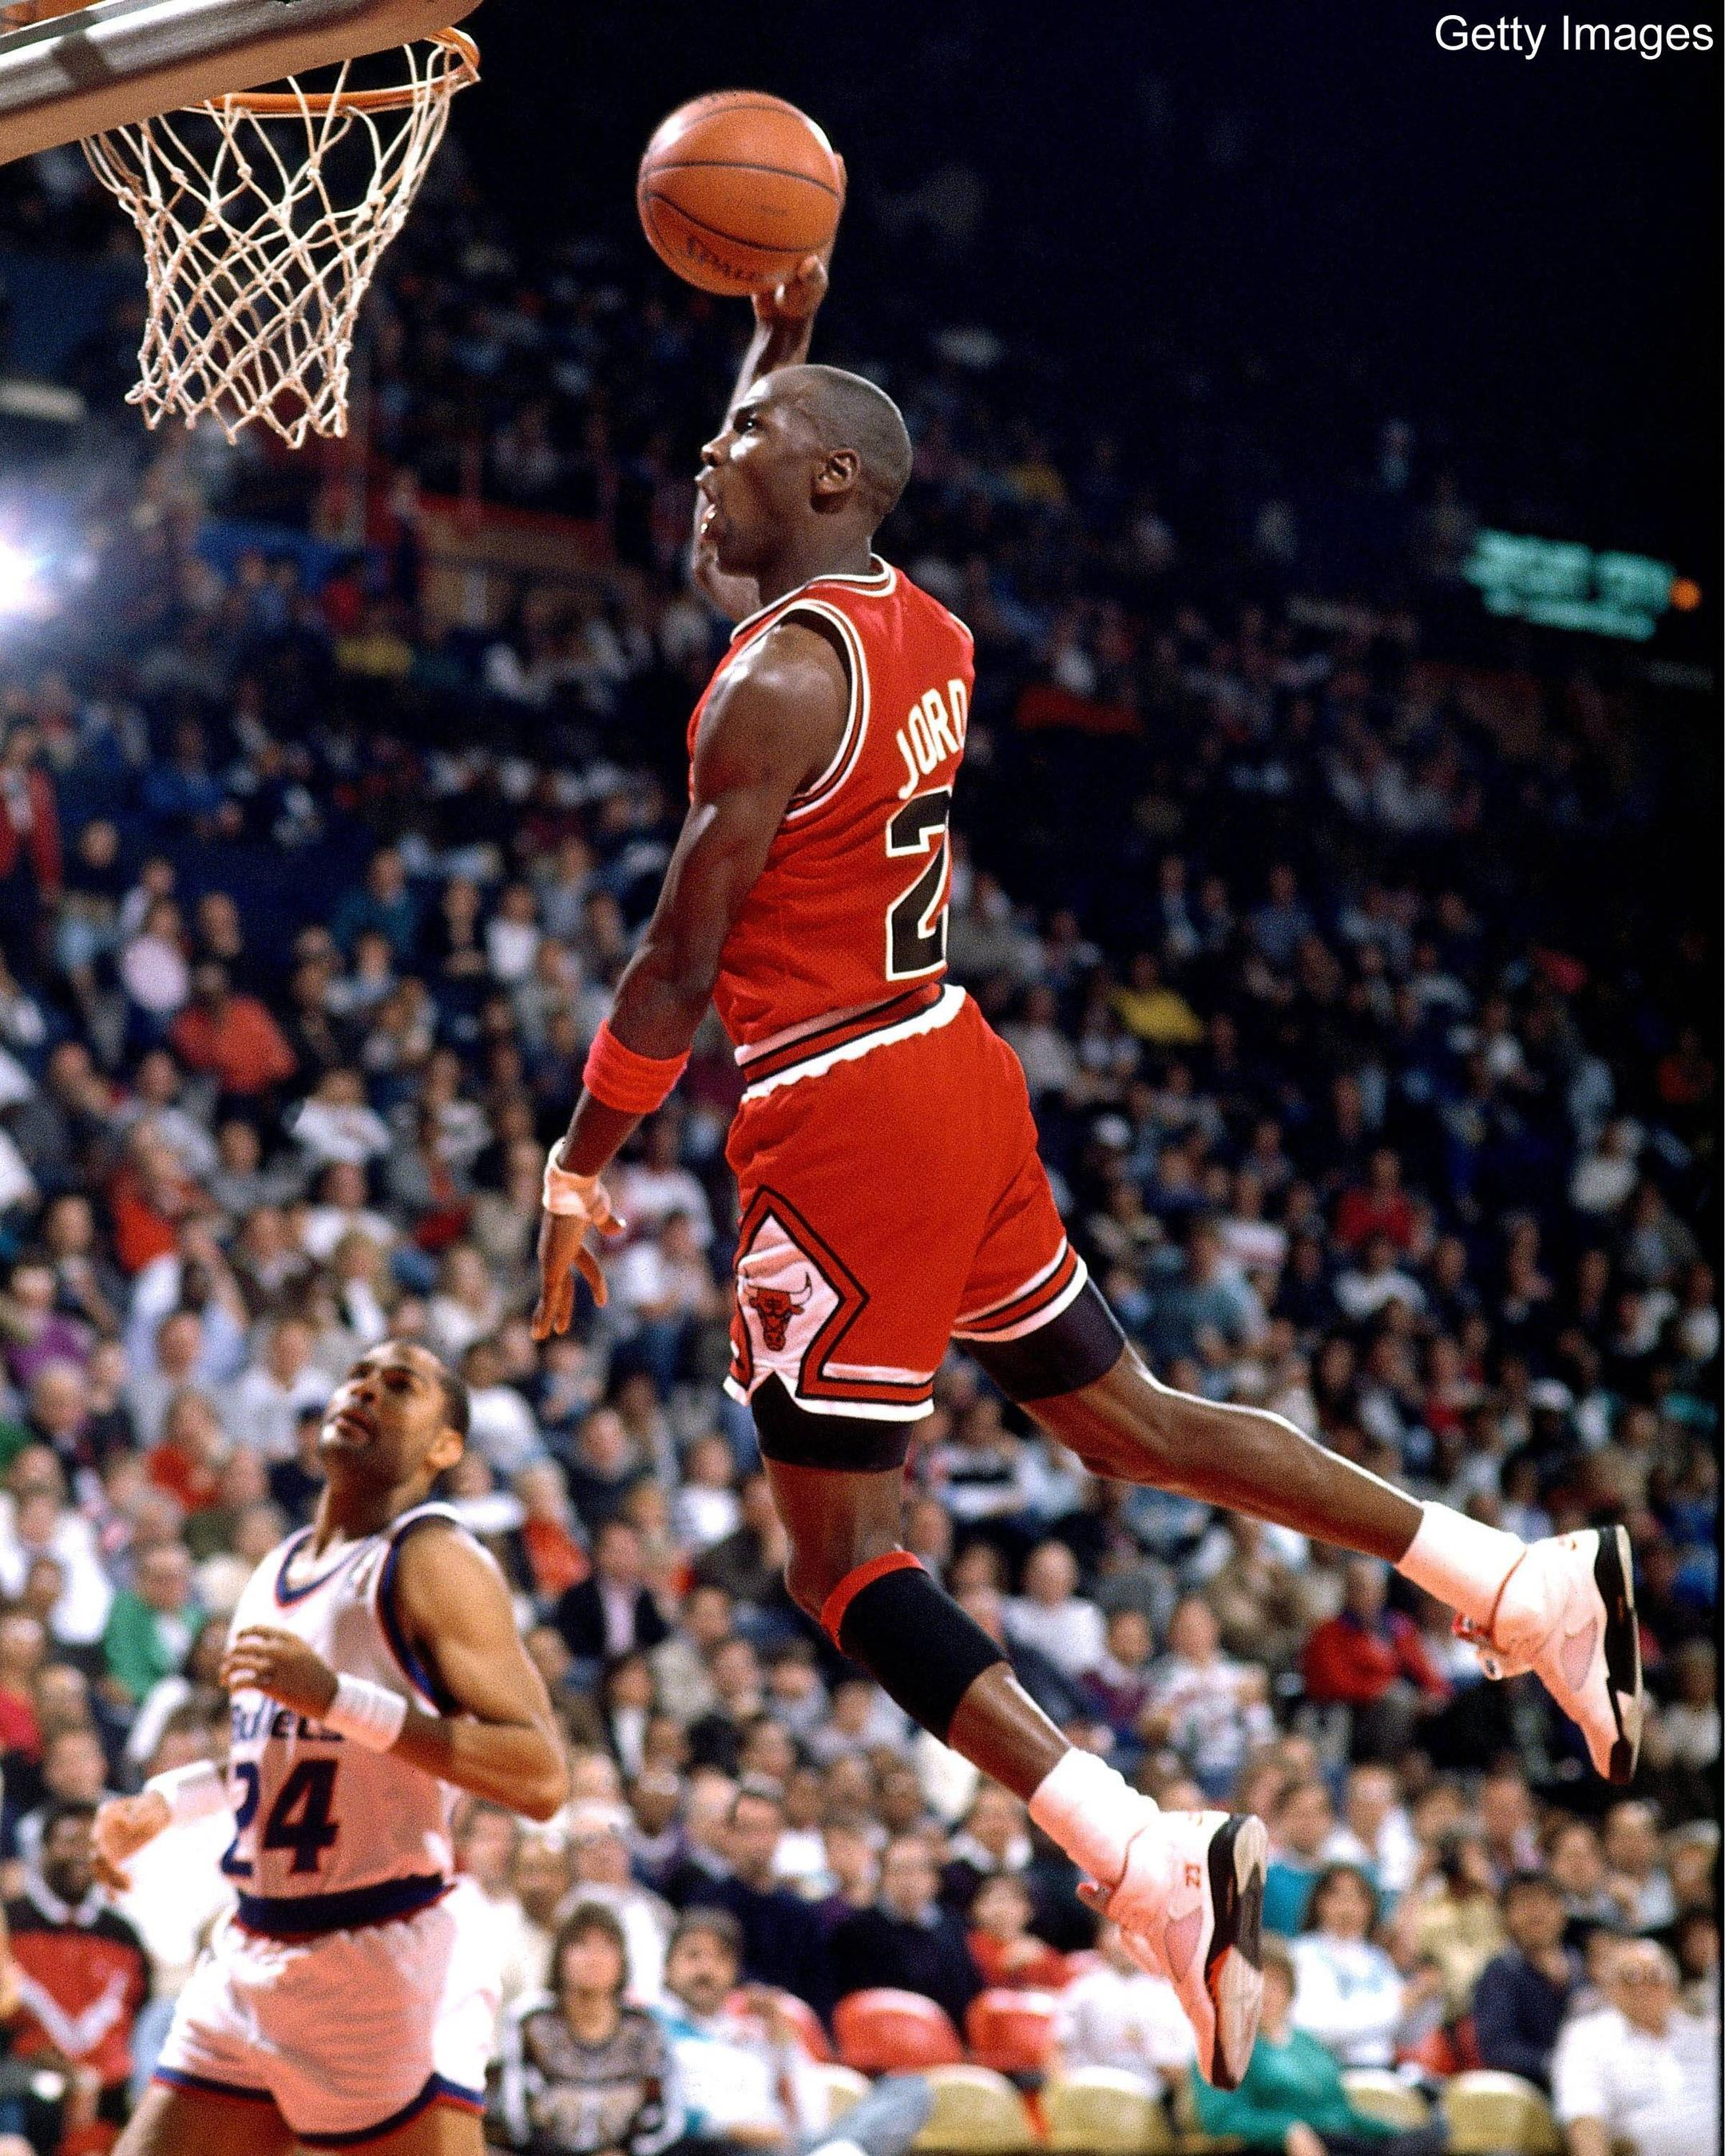 micheal jordan essay Kashmir day essay in easy pass essay on plastic pollution in english features of socialism and capitalism essay descriptive essay about my favorite animal research papers on cancer treatment defence day essay in english union baristas at starbucks essay research paper about gender inequality, conclusion for a gay marriage essay geoecology essays on the great the devil and tom walker essay.